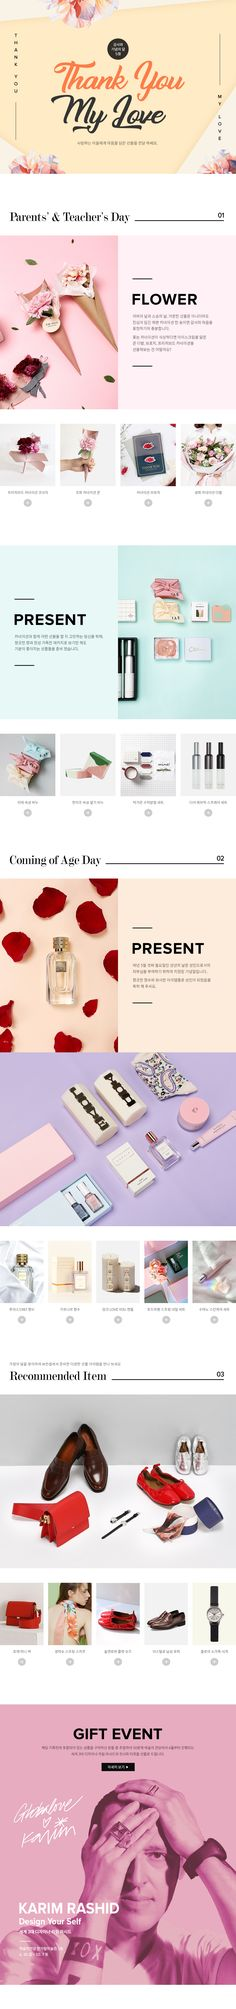 기획전, editorial,promotion,이벤트,event Email Design, Ad Design, Event Design, Layout Design, Blog Layout, Website Layout, Web Layout, Landing Page Inspiration, Graphic Design Inspiration